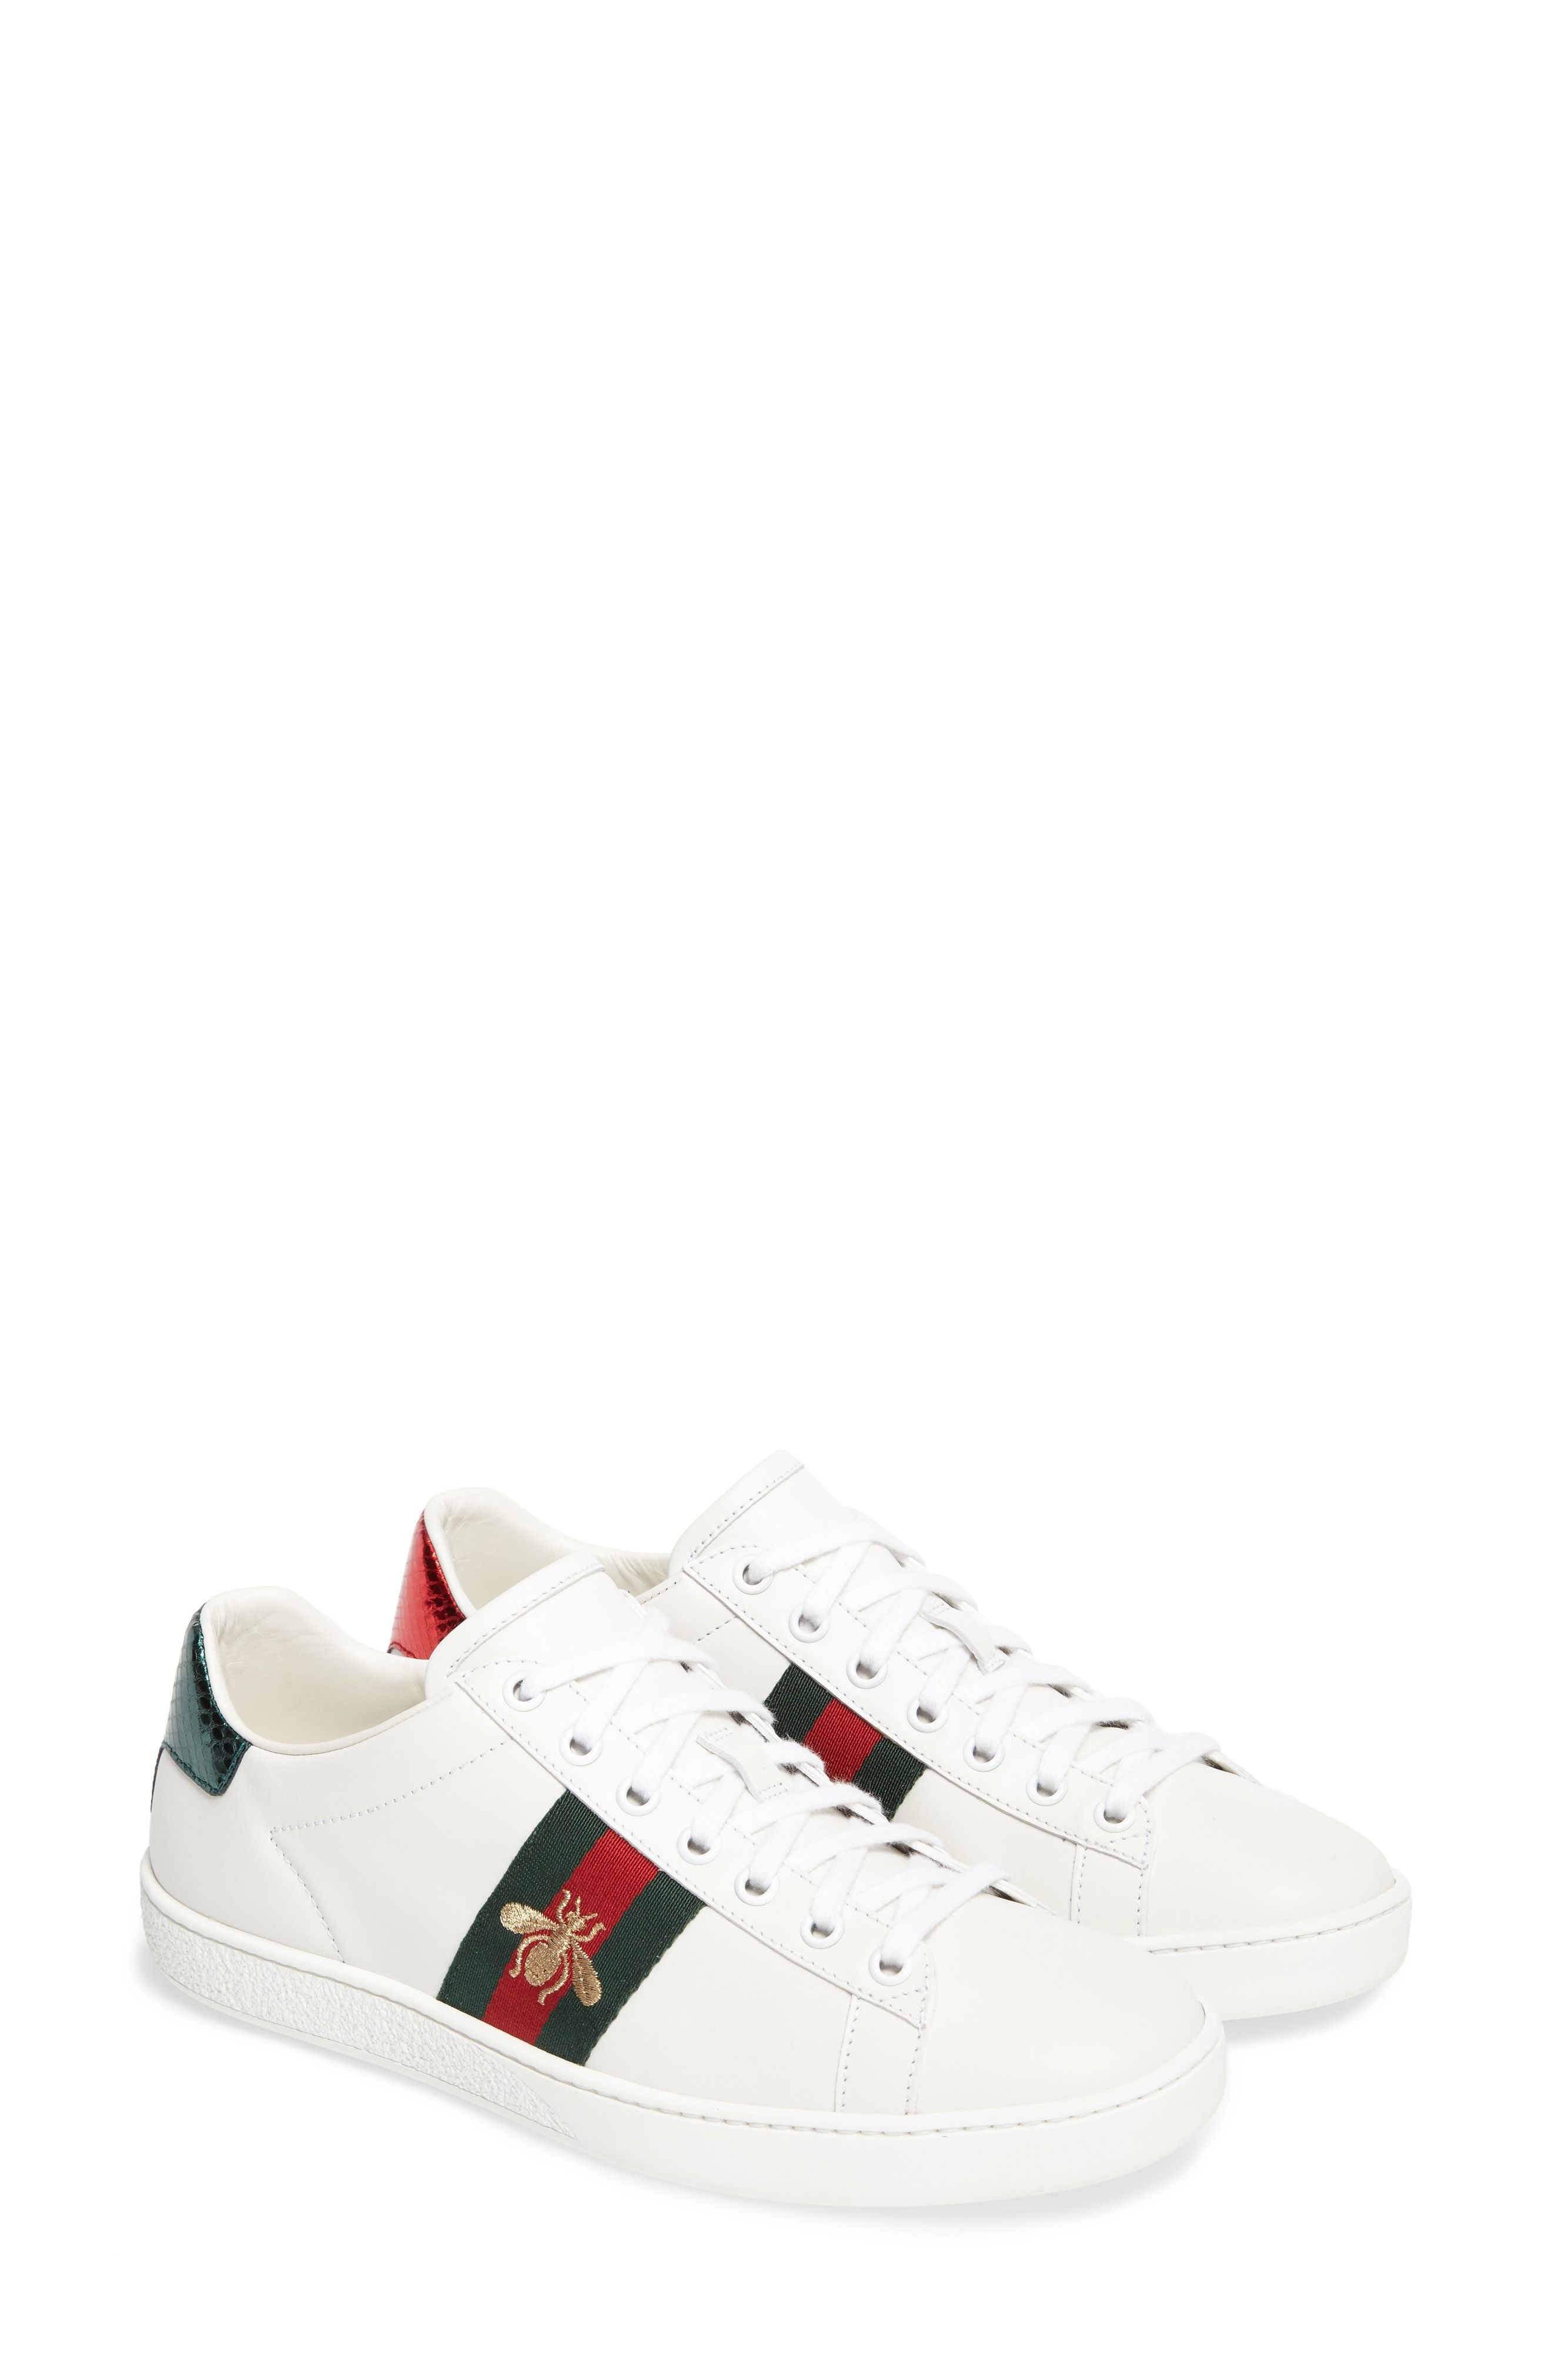 84ccb1a06e8 Gucci Ace Watersnake-Trimmed Embroidered Leather Sneakers, White ...